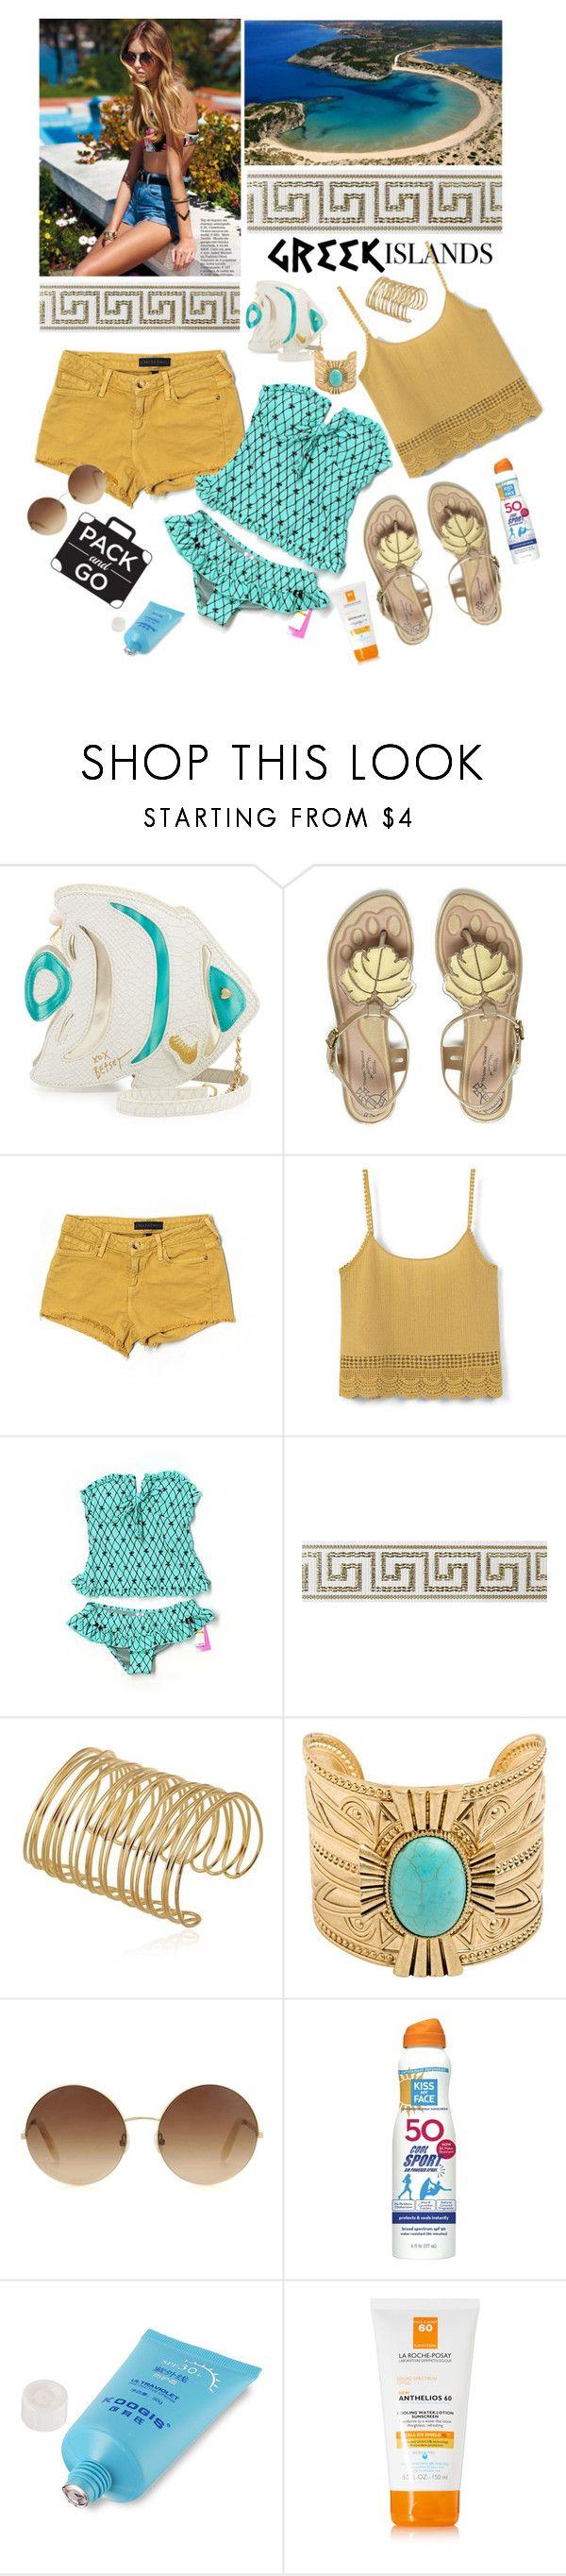 """Greek"" by hani-bgd ❤ liked on Polyvore featuring Betsey Johnson, Vivienne Westwood Anglomania + Melissa, Juicy Couture, MANGO, Costa, Victoria Beckham, Kiss My Face, La Roche-Posay, Packandgo and greekislands"